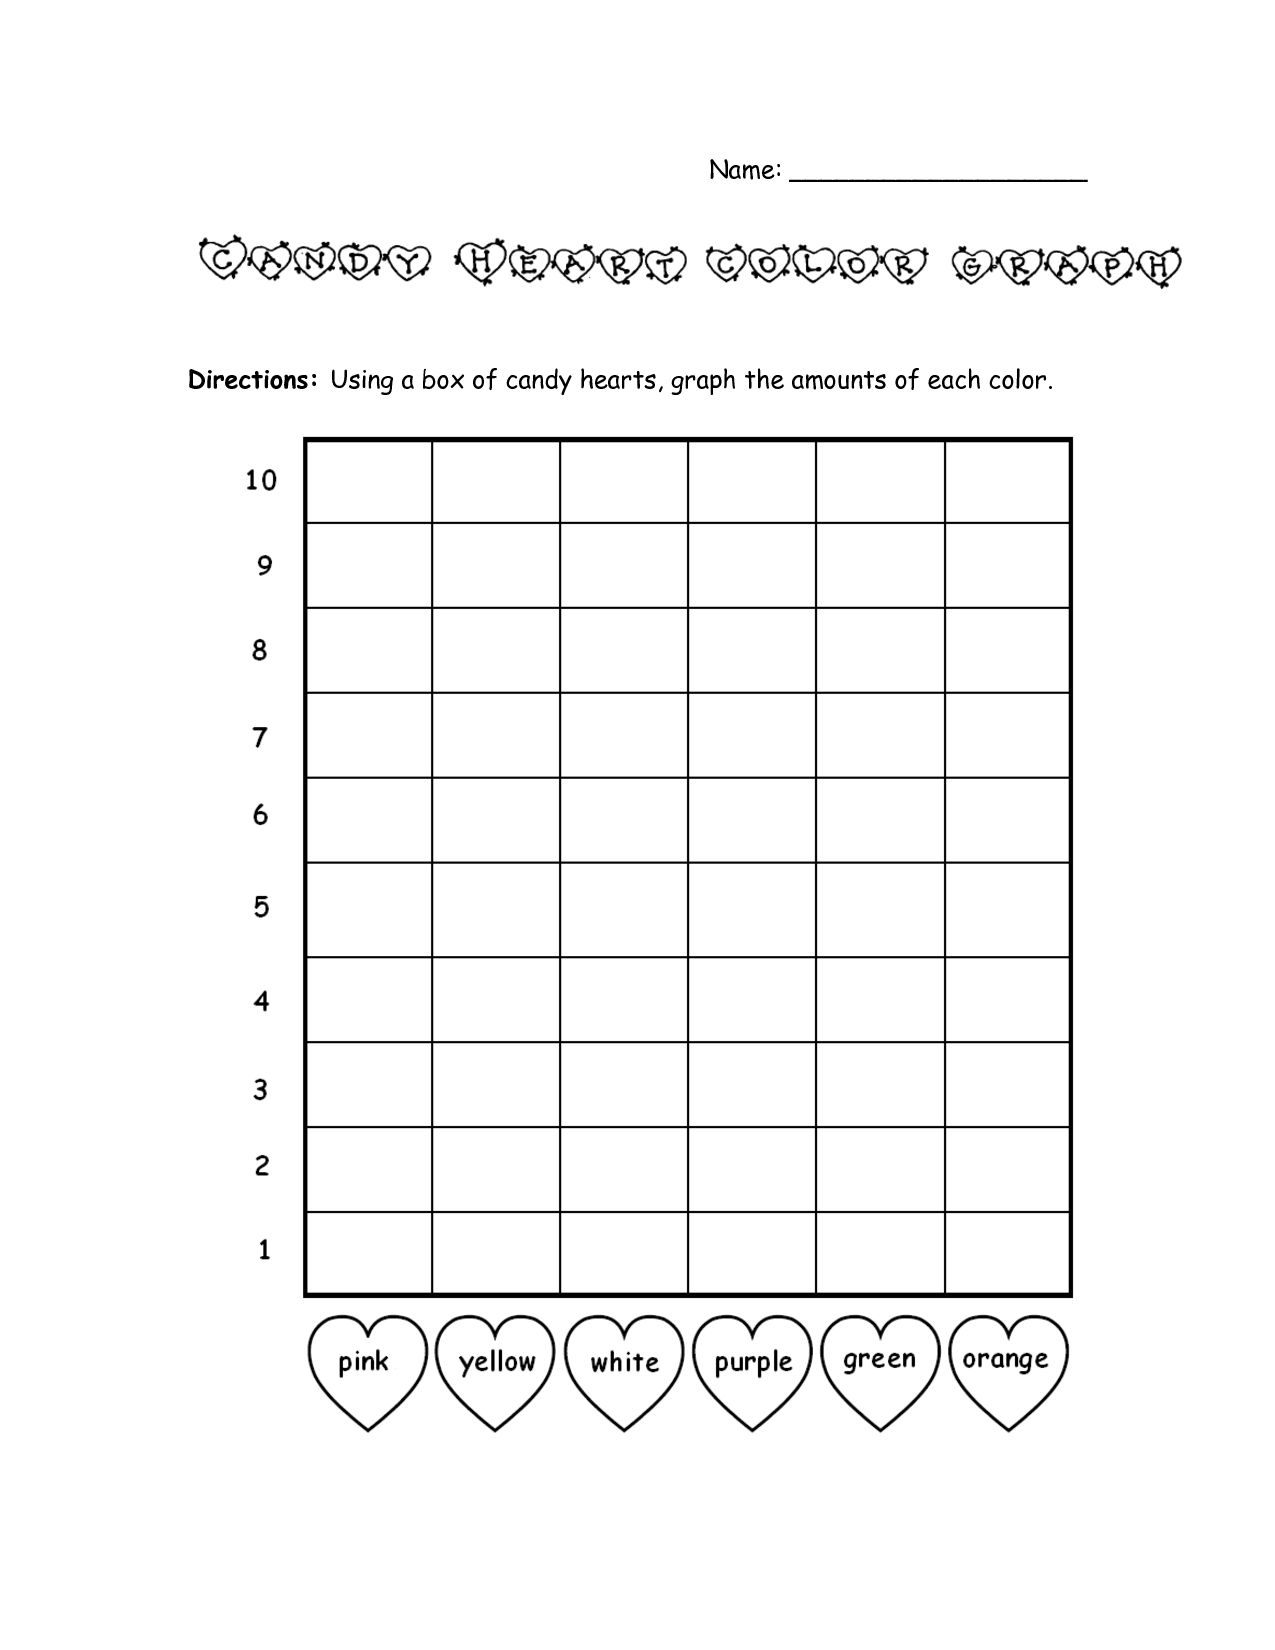 Candy Heart Color Graph